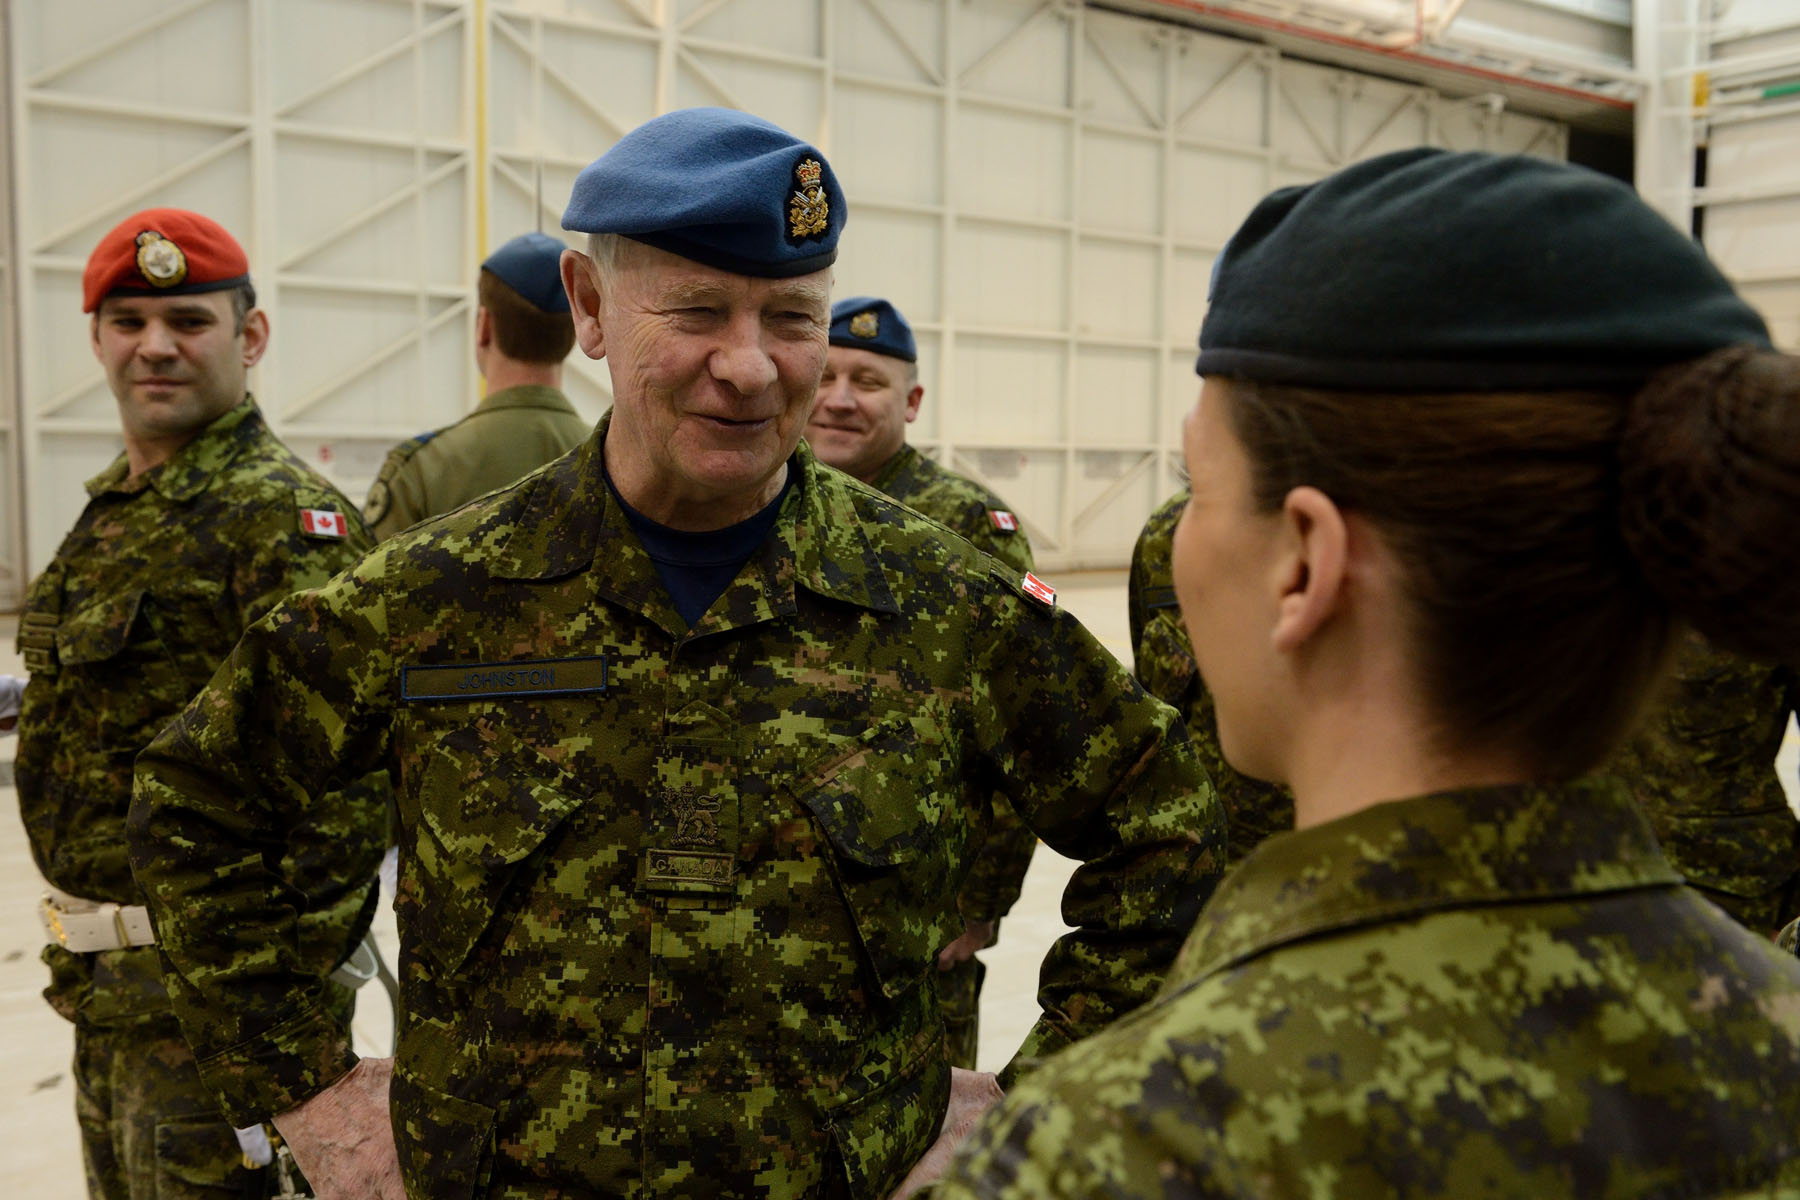 His Excellency then toured the establishment, viewed the equipment in the crew systems laboratory, and met with personnel.